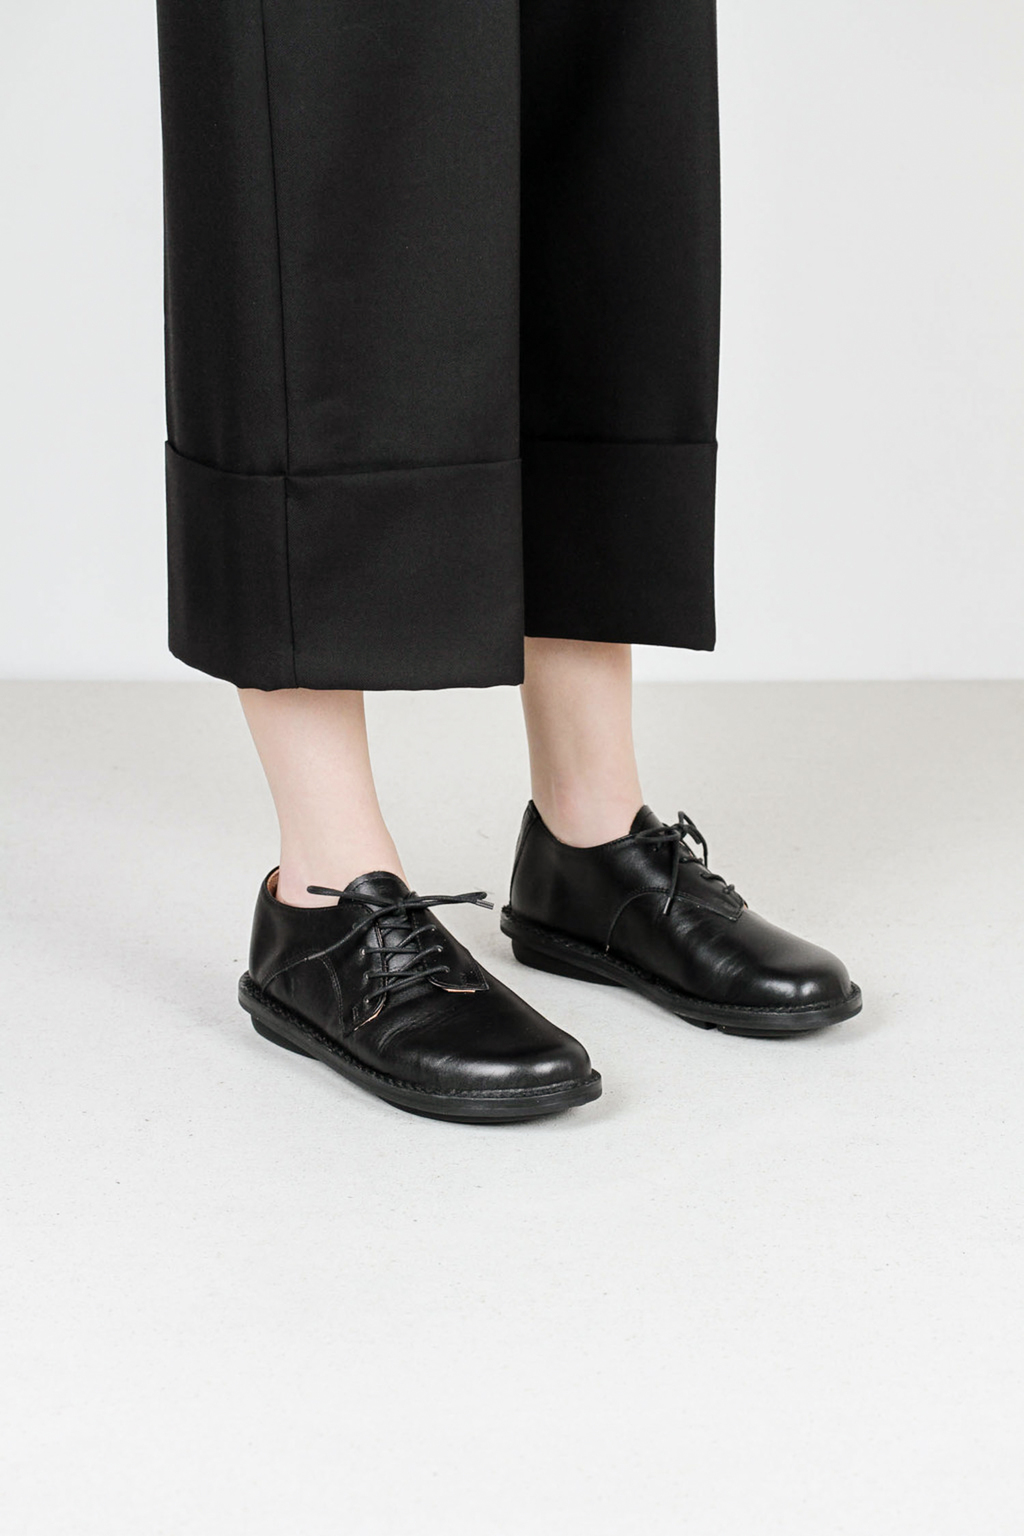 Trippen dippy f box blk leather shoes